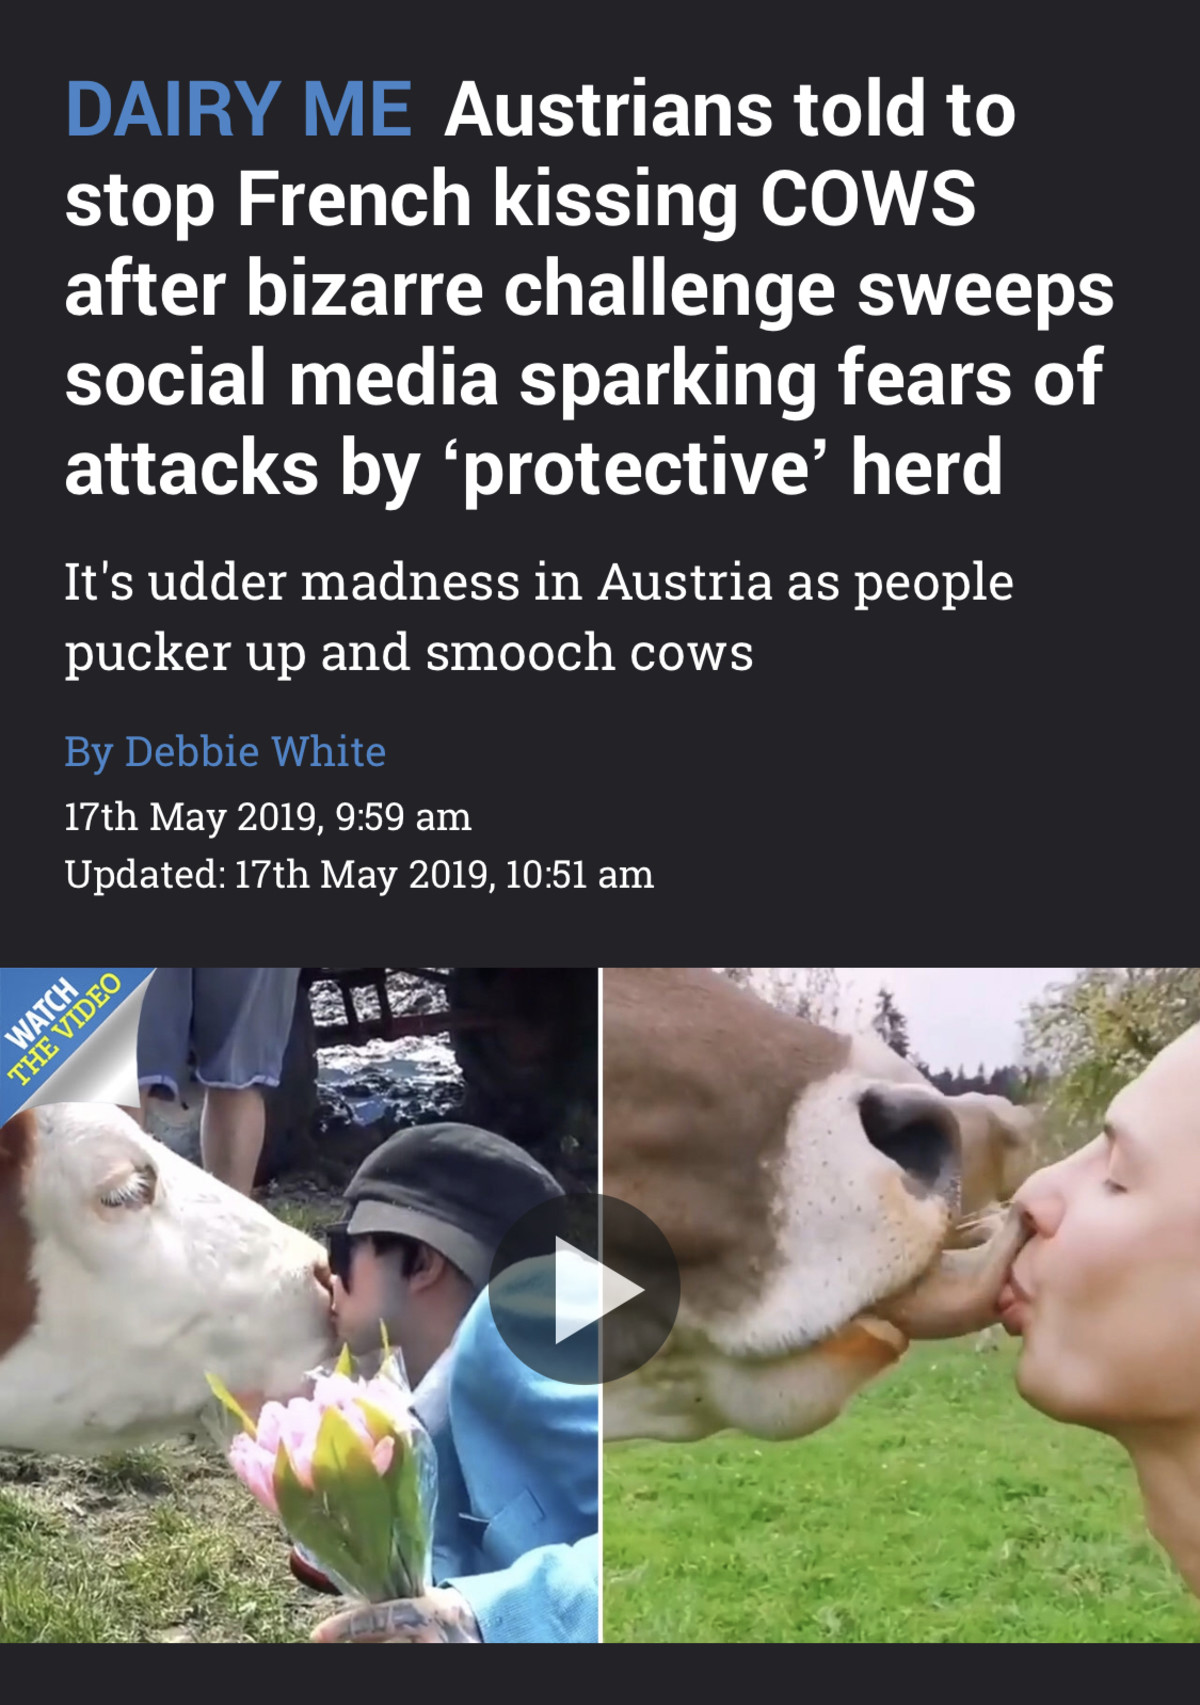 """Tongue tied. https://www.thesun.co.uk/news/9094938/austrians-told-stop-kissing-cows-bizarre-challenge-social-media-health-fears/.. Suddenly cow smooching is acceptable cause it's a """"challenge"""" ....hypocrites"""